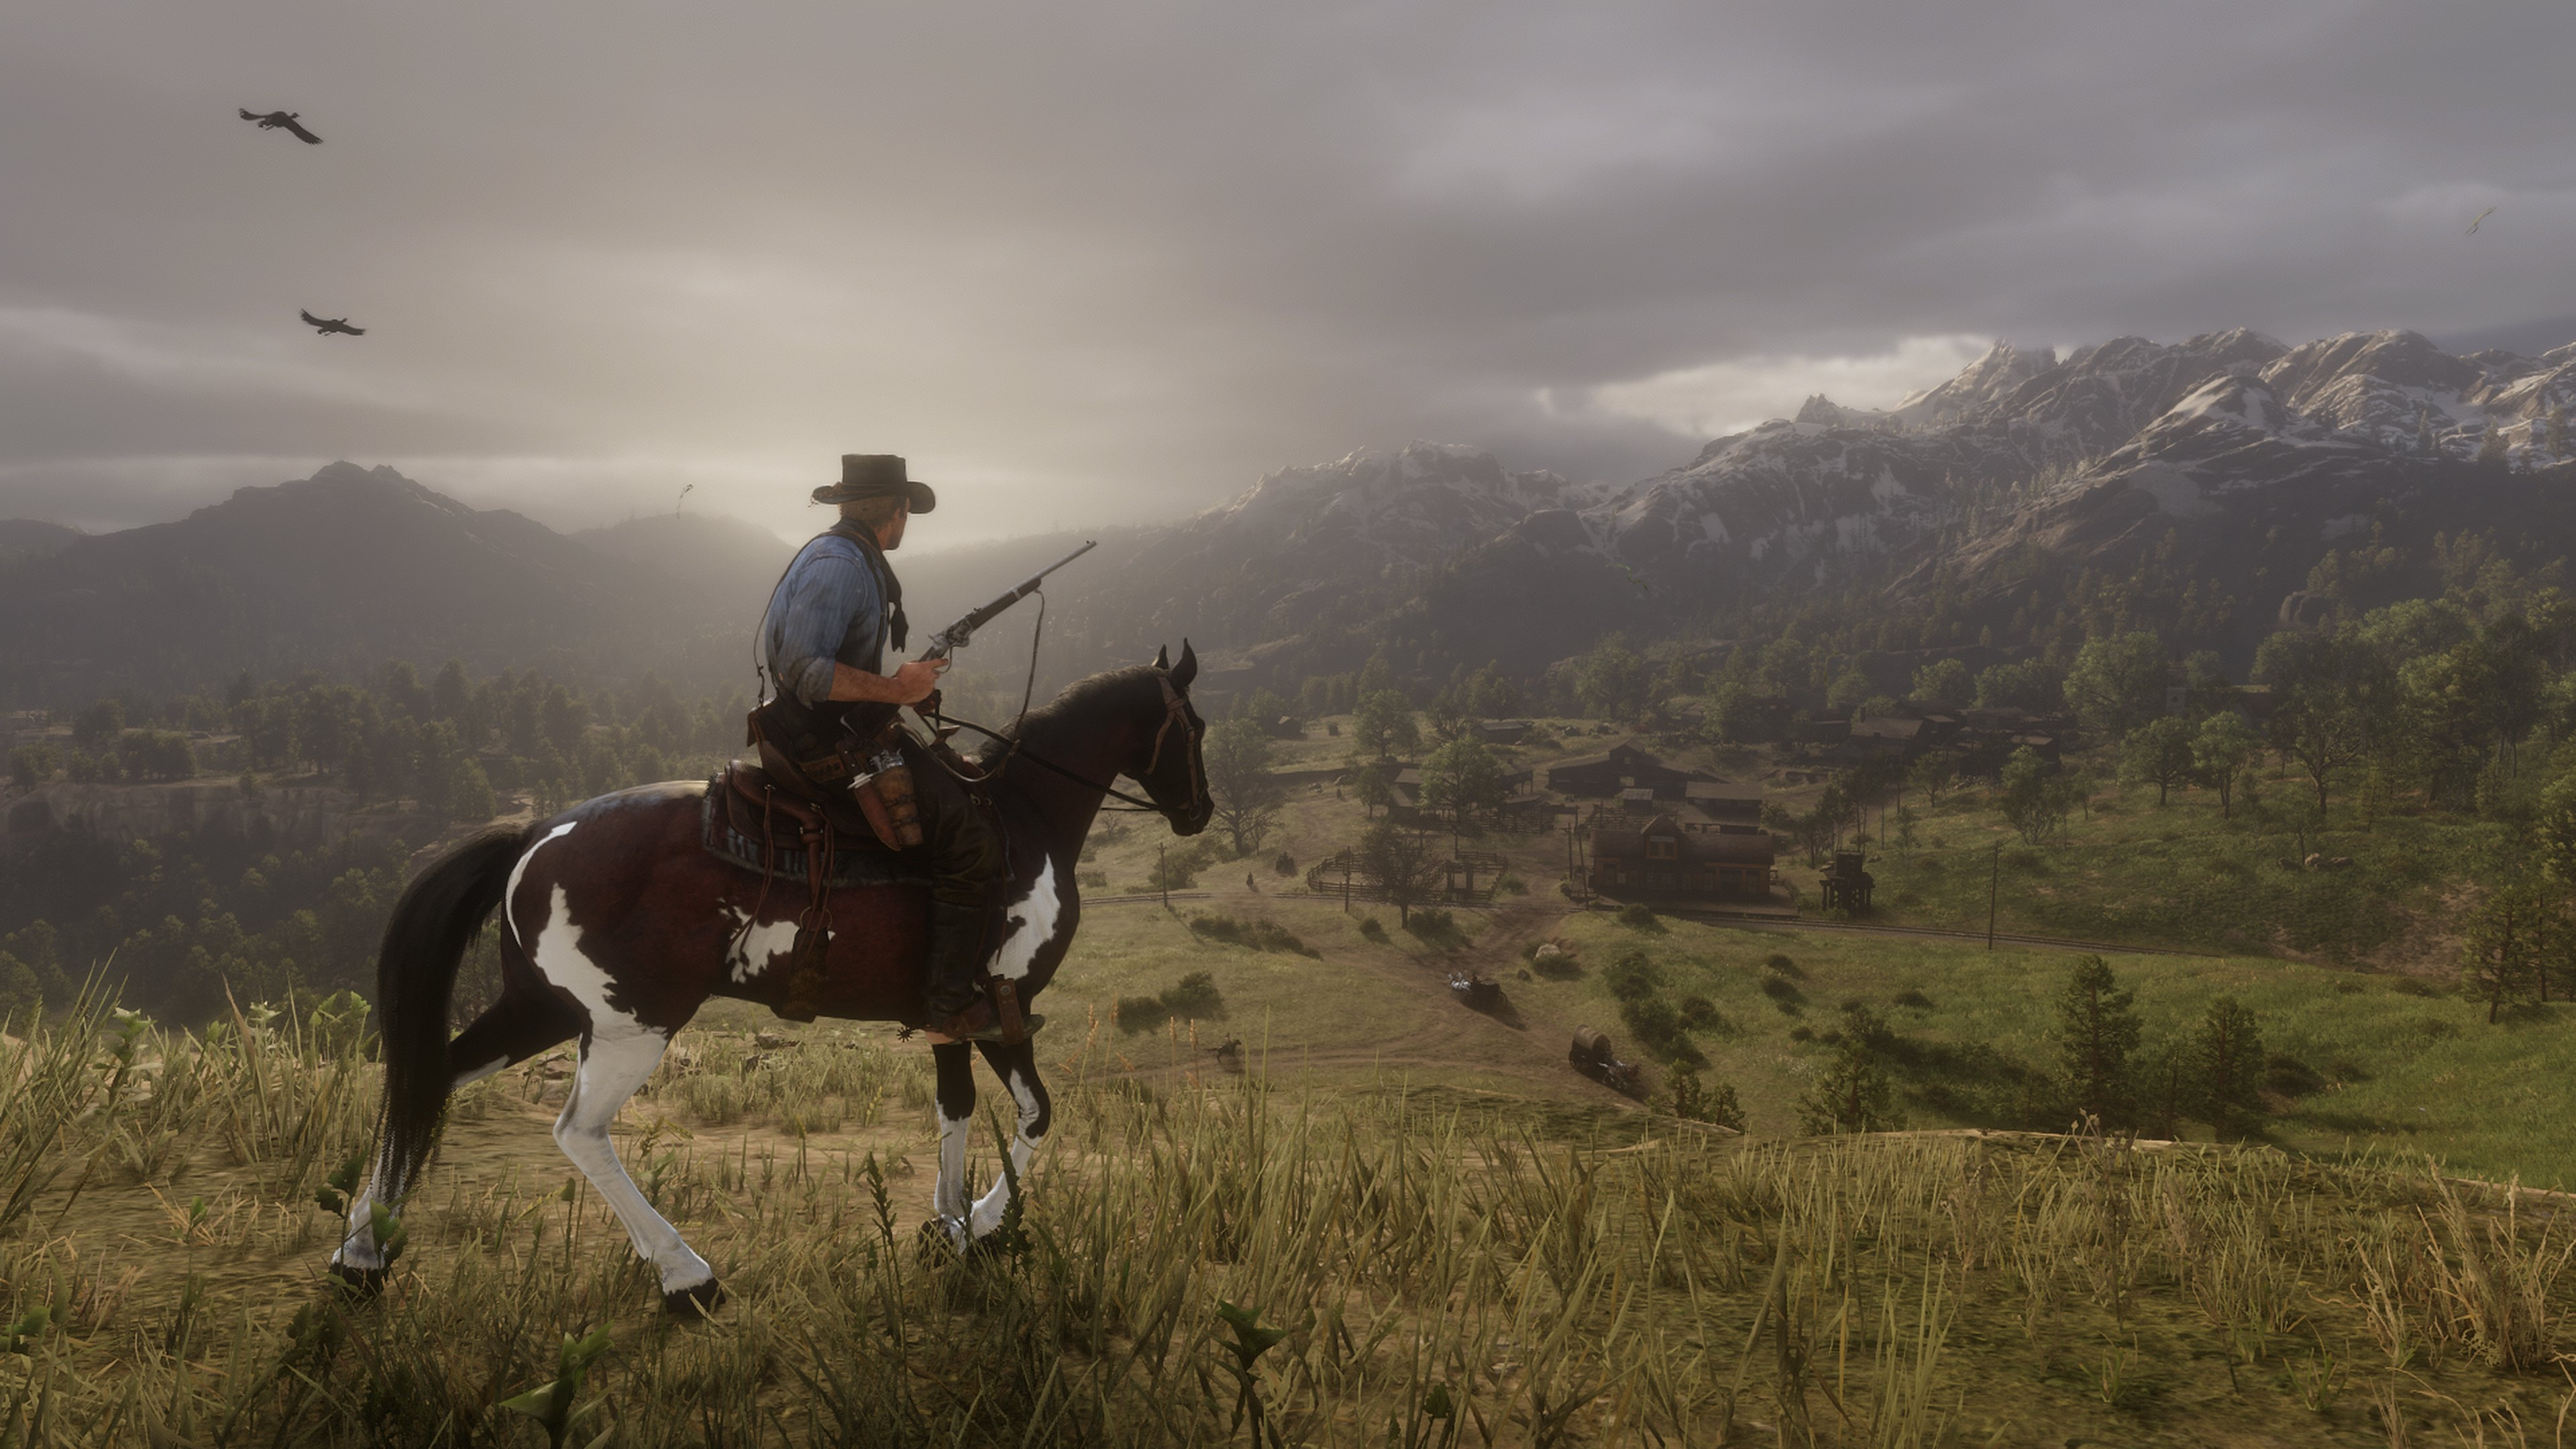 146047027de9c401cd7a00c192fb95dd.jpg - Red Dead Redemption 2